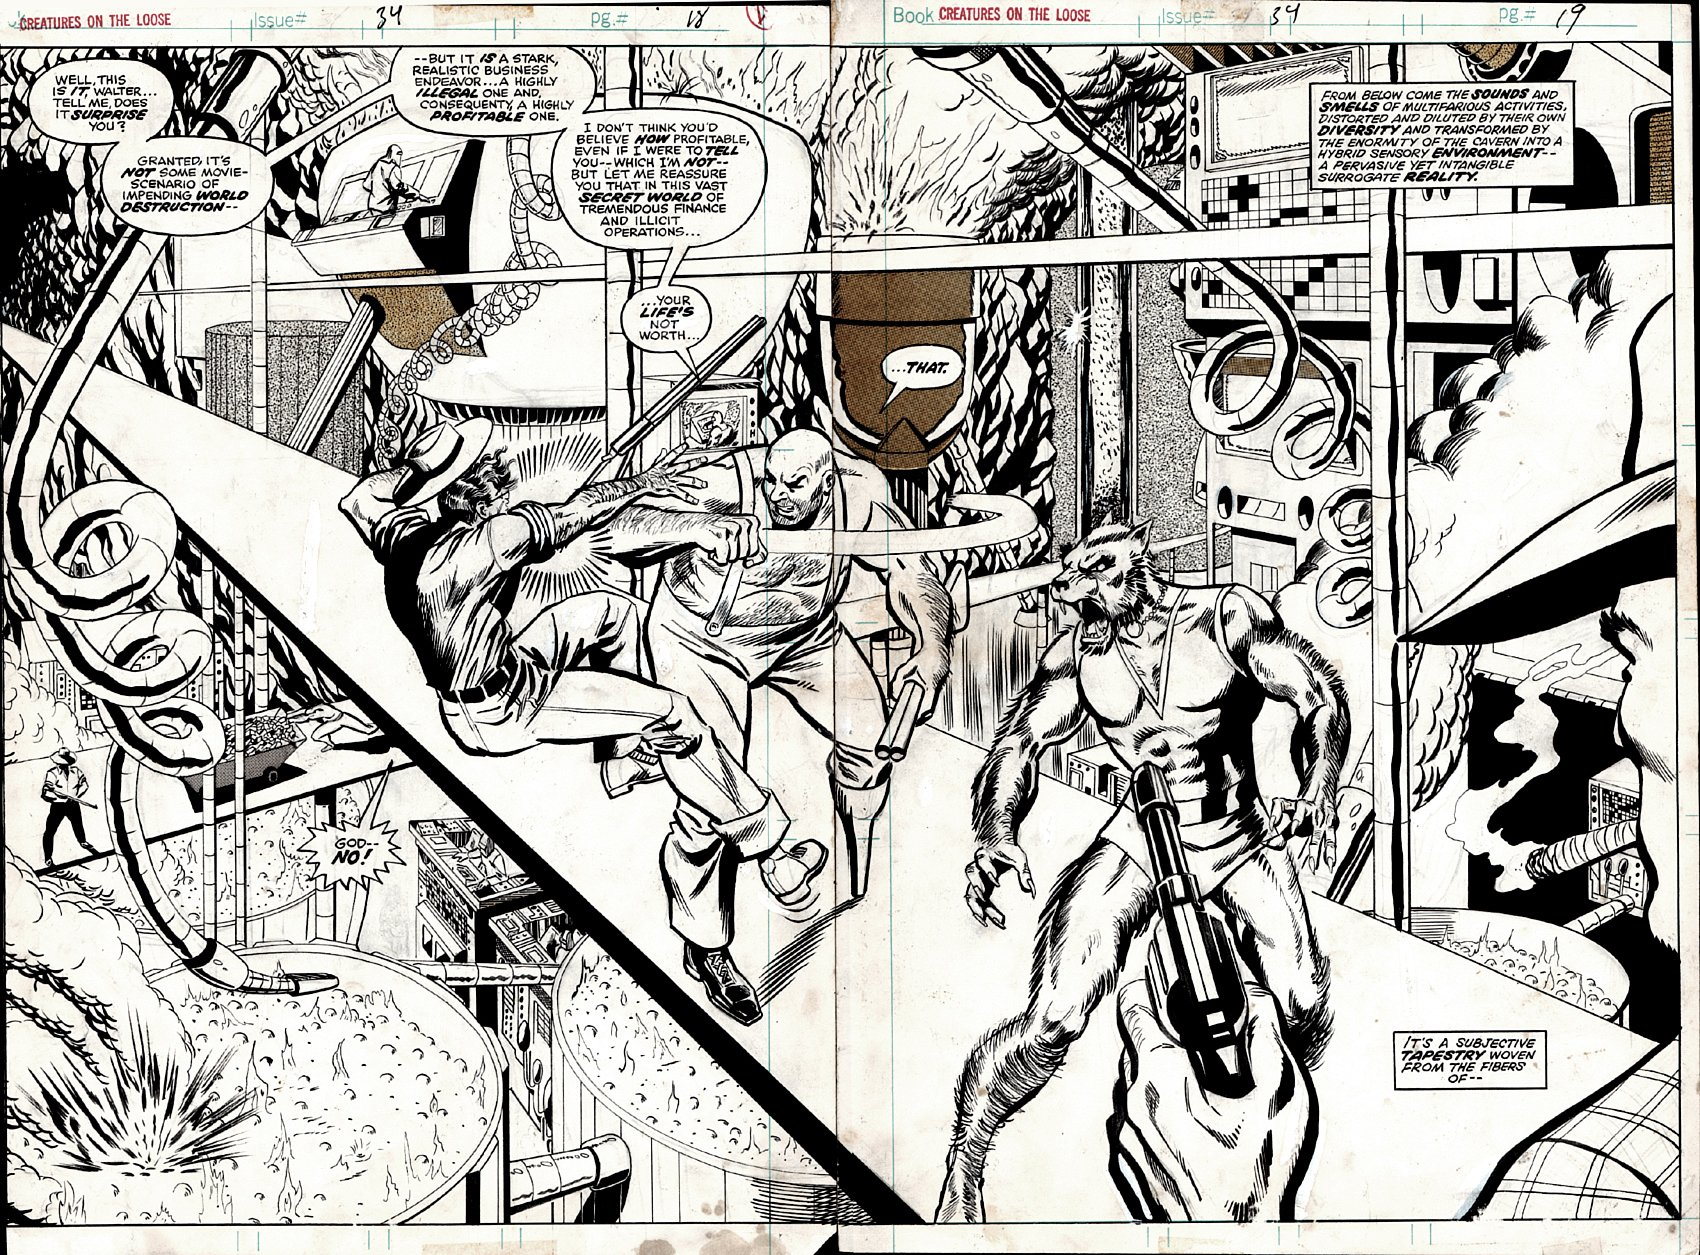 Creatures on the Loose #34 p 18-19 Double Spread Splash On 2 Boards (1975)